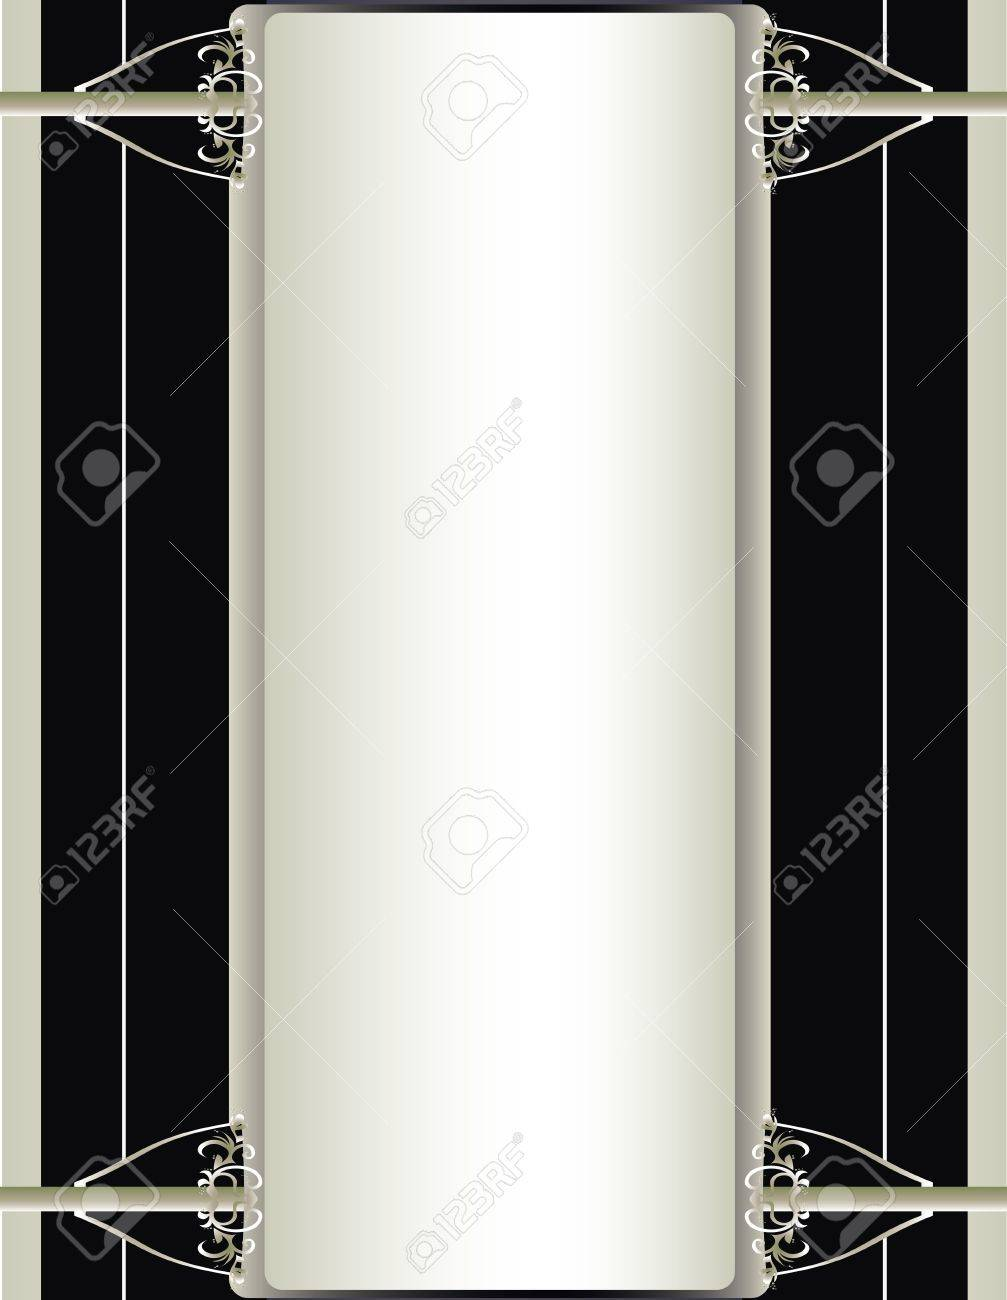 Off white, black, and silver background Stock Vector - 7315151